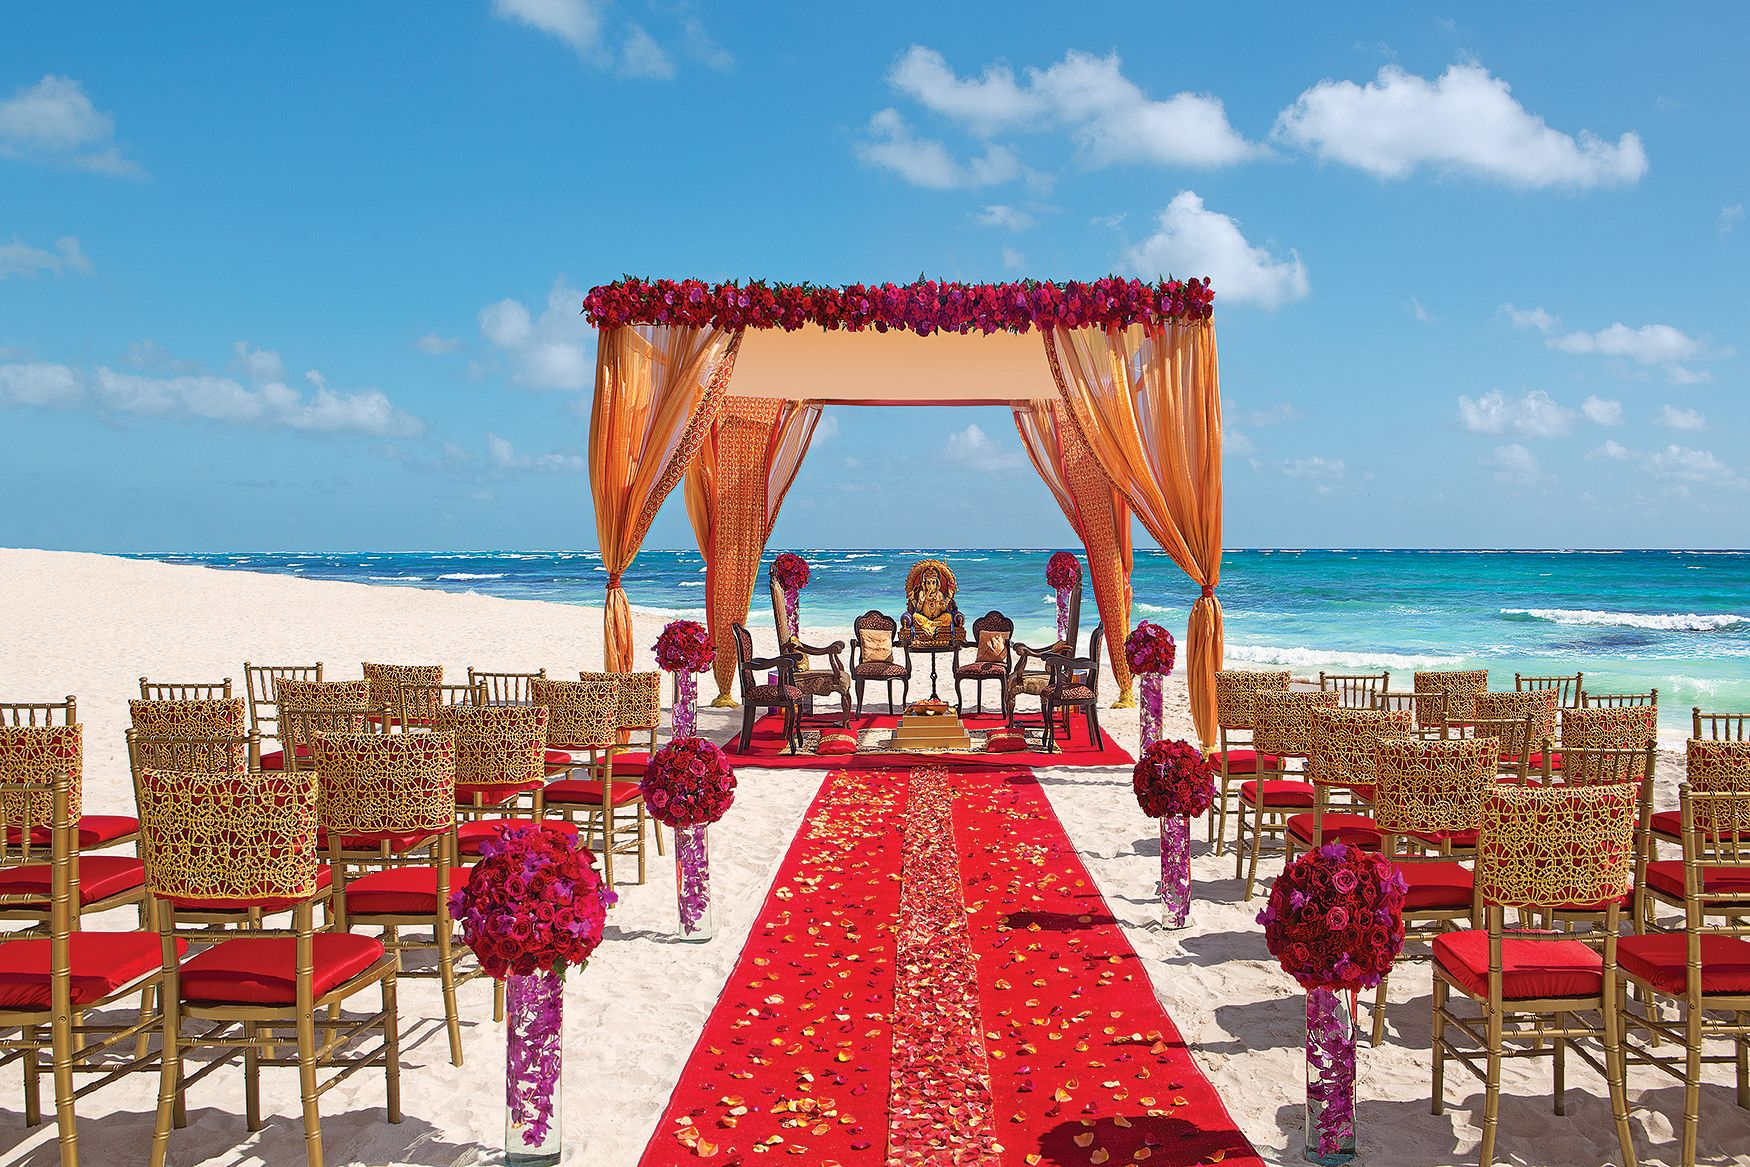 Plan a south asian inspired destination wedding wedding for Plan a destination wedding